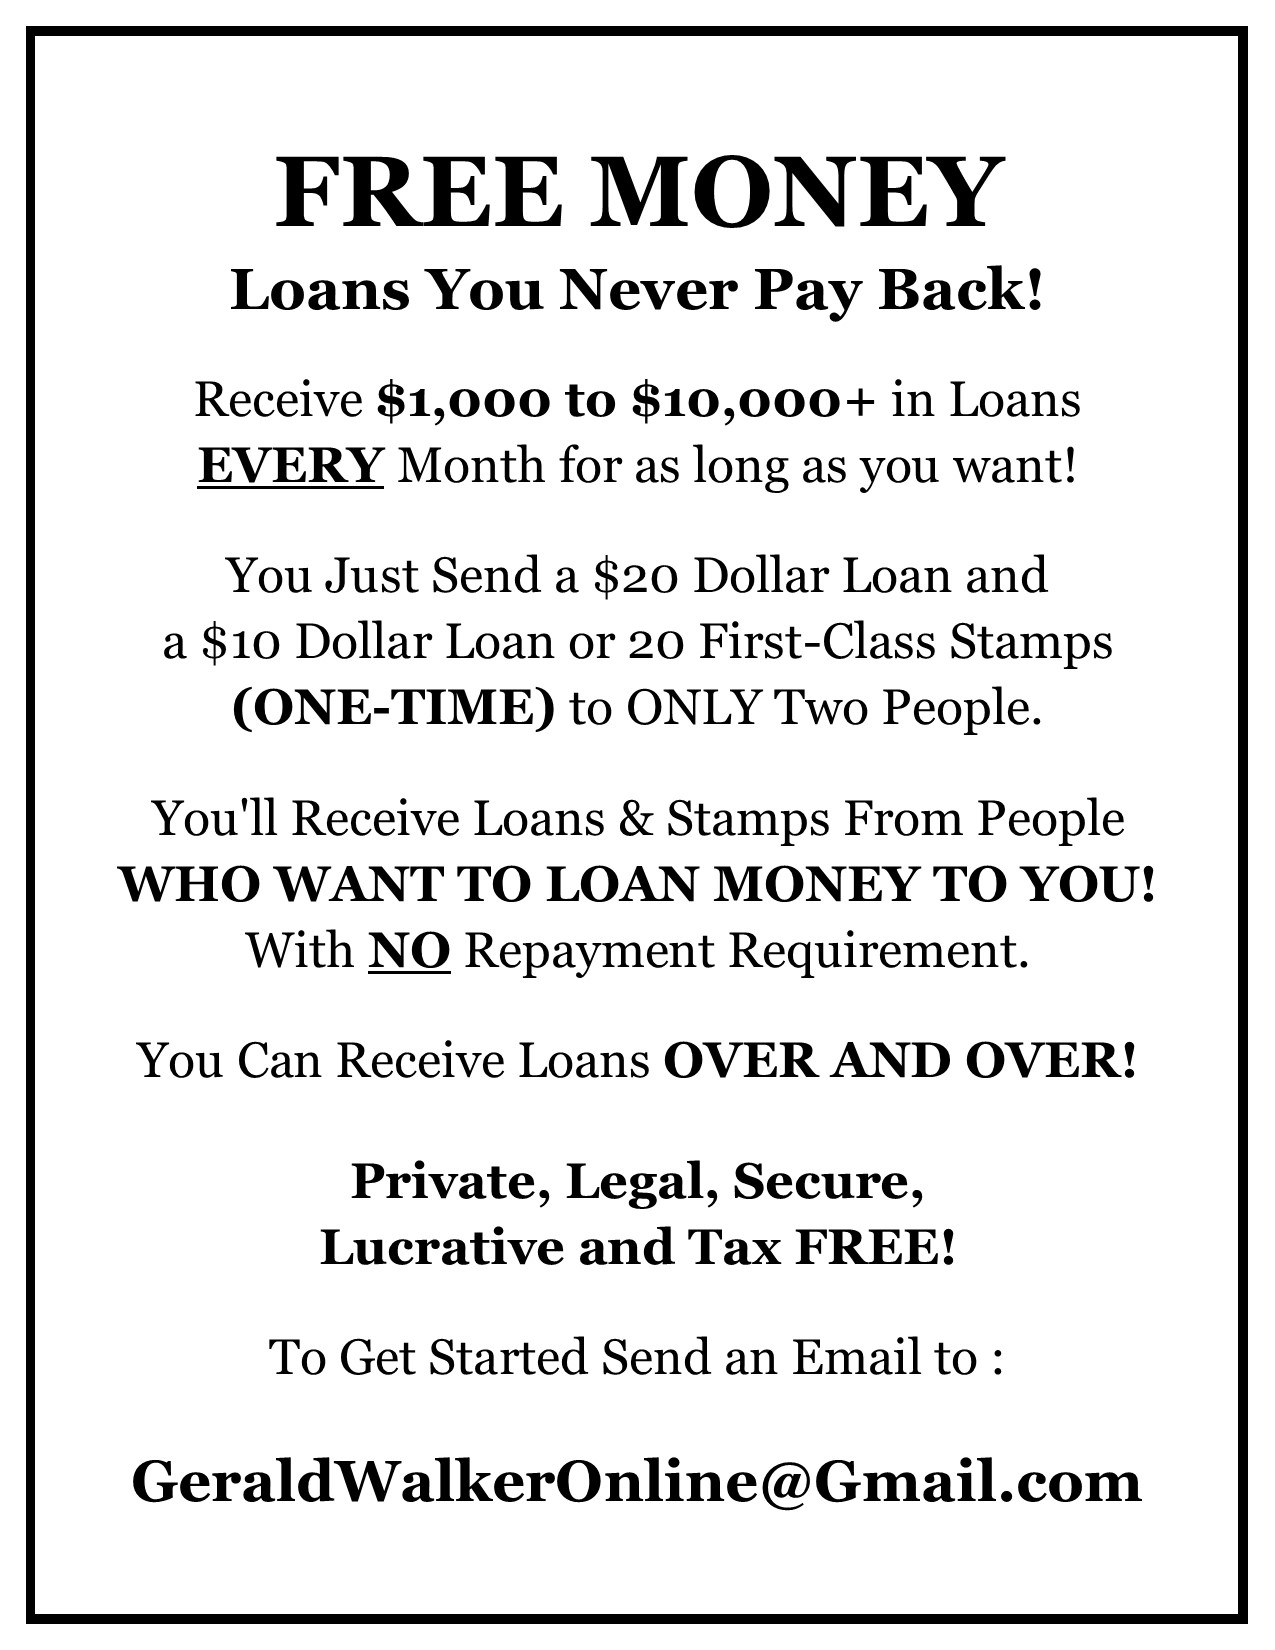 Loans You Never Pay Back